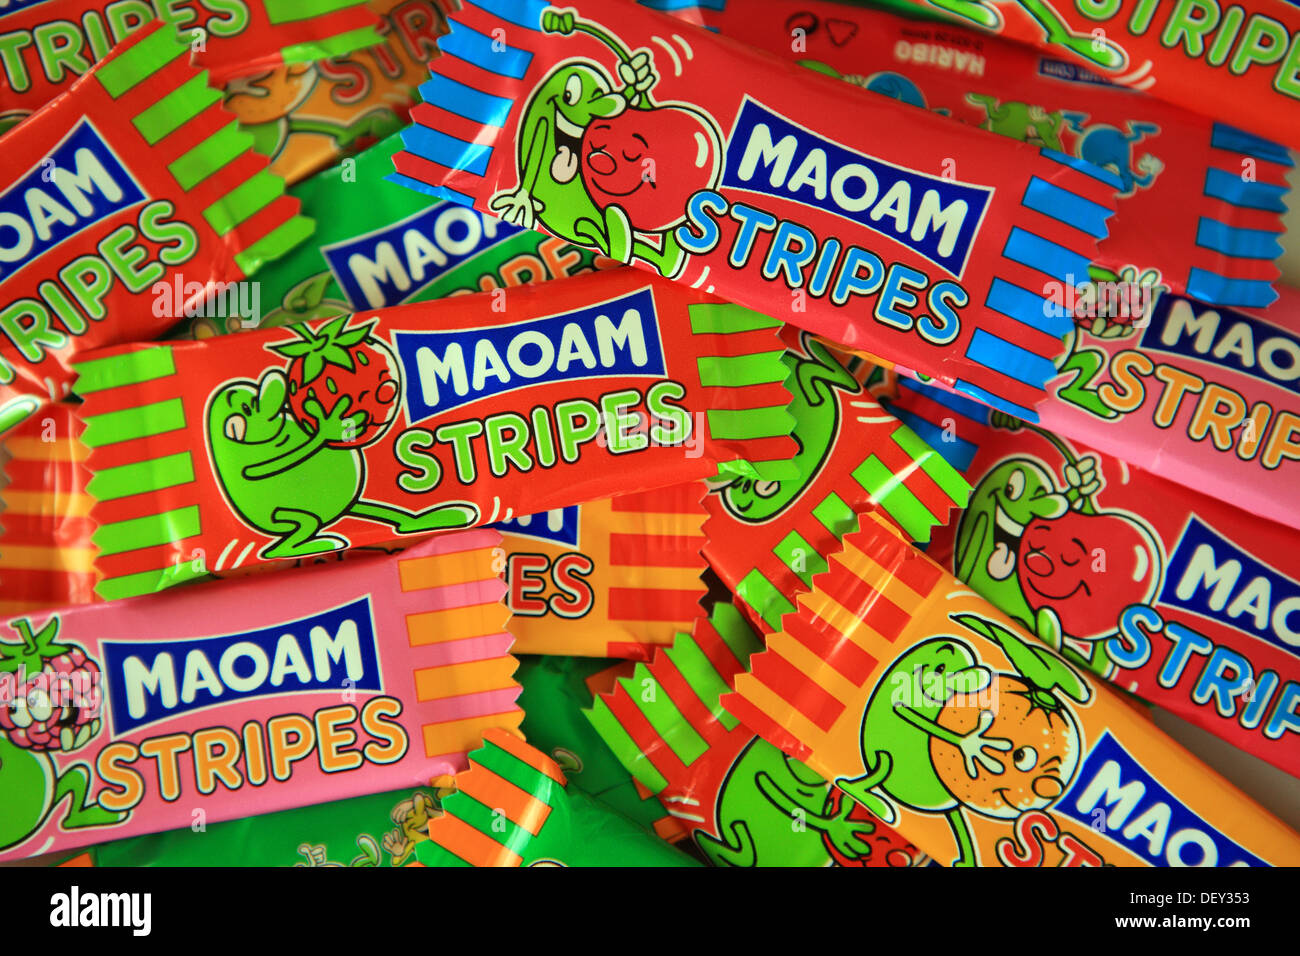 Children's fruit flavoured chewy sweets, Maoam Stripes, in colourful wrappers - Stock Image